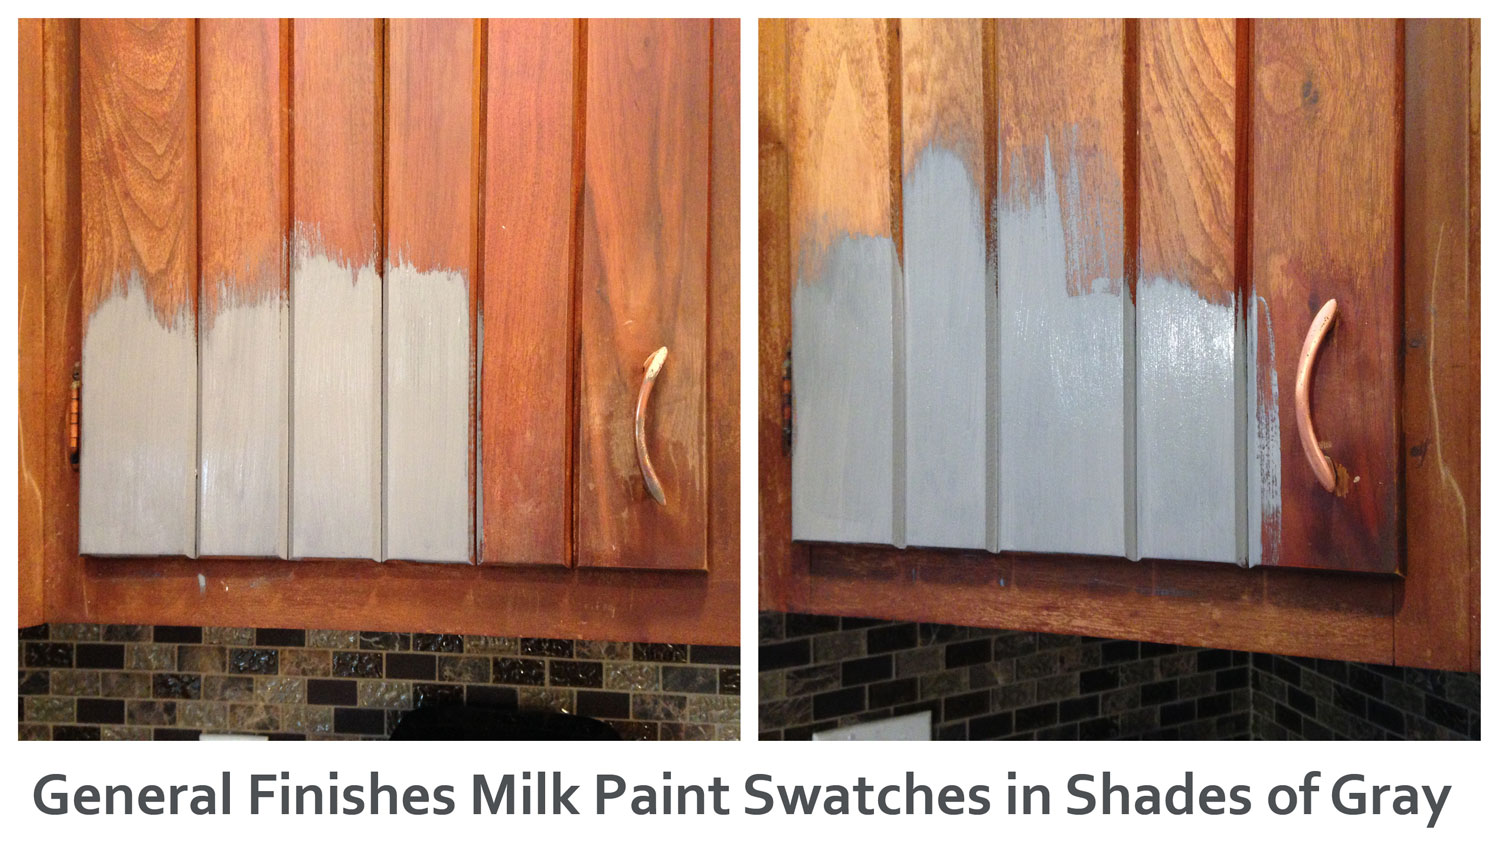 General Finishes Milk Paint Swatches in Shades of Gray